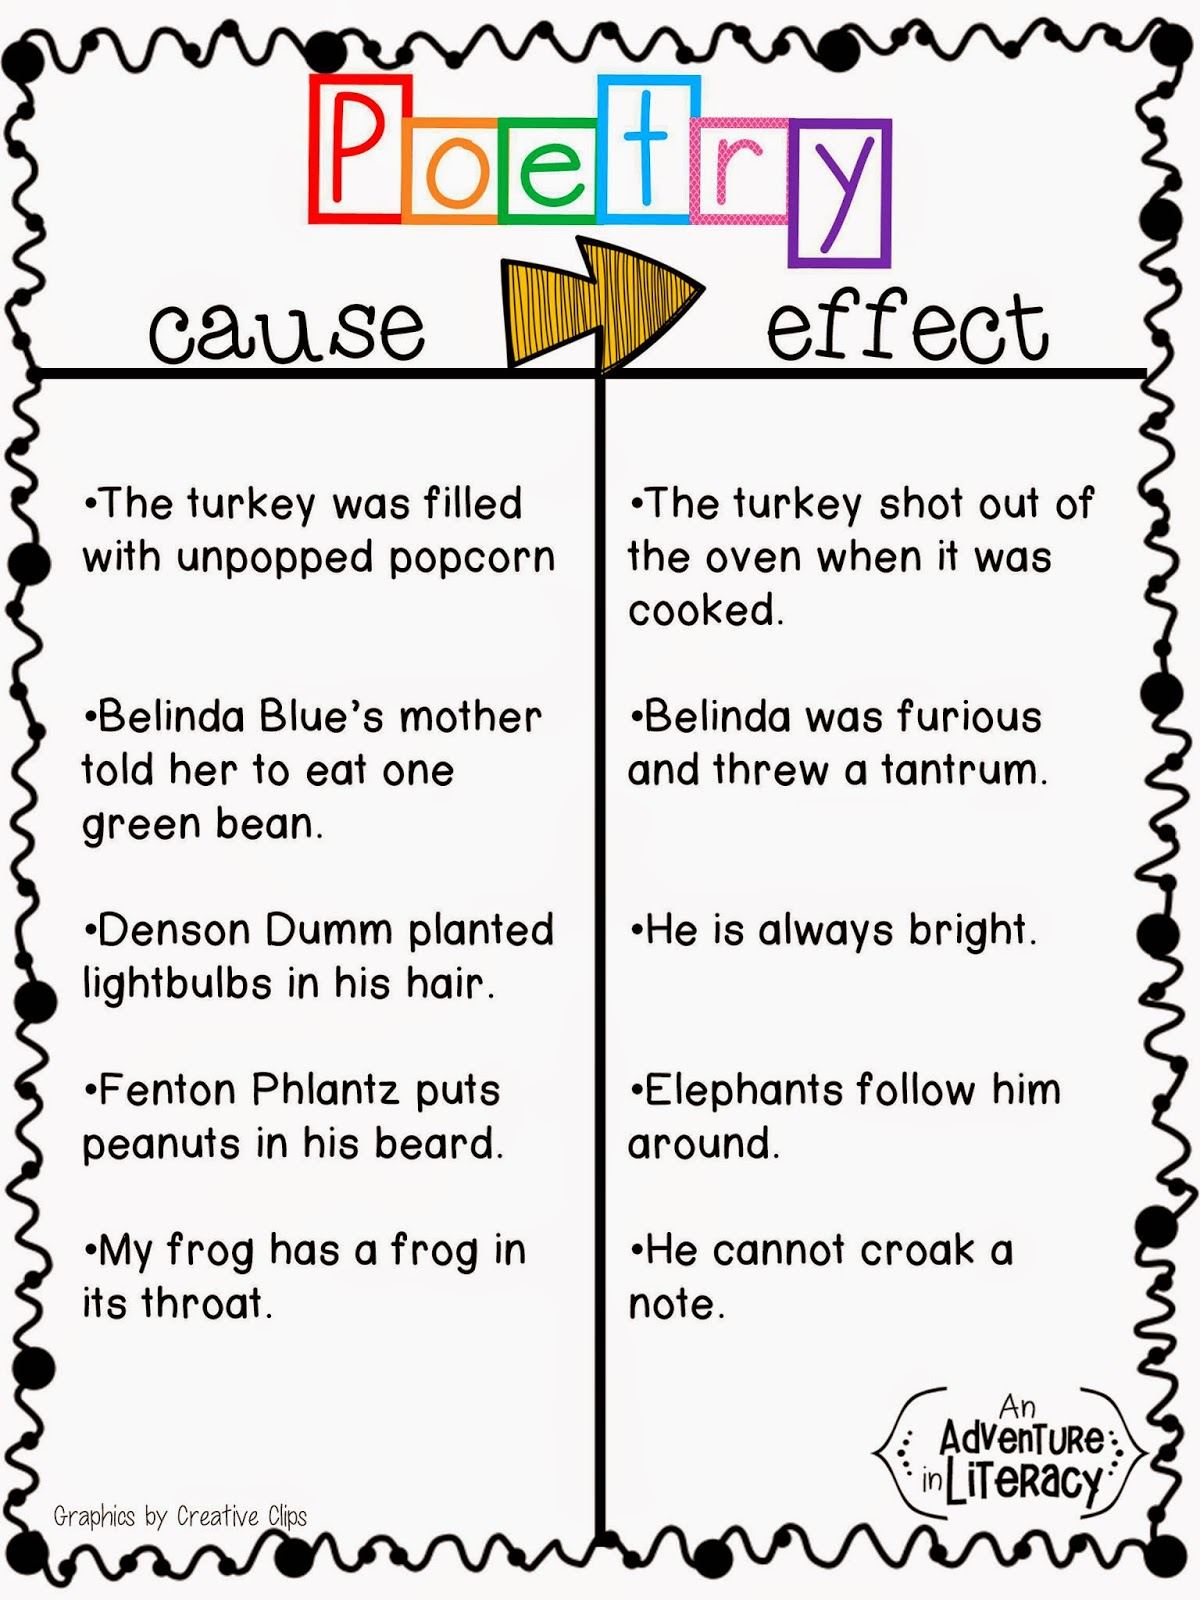 Worksheet Cause And Effect Worksheets For 4th Grade